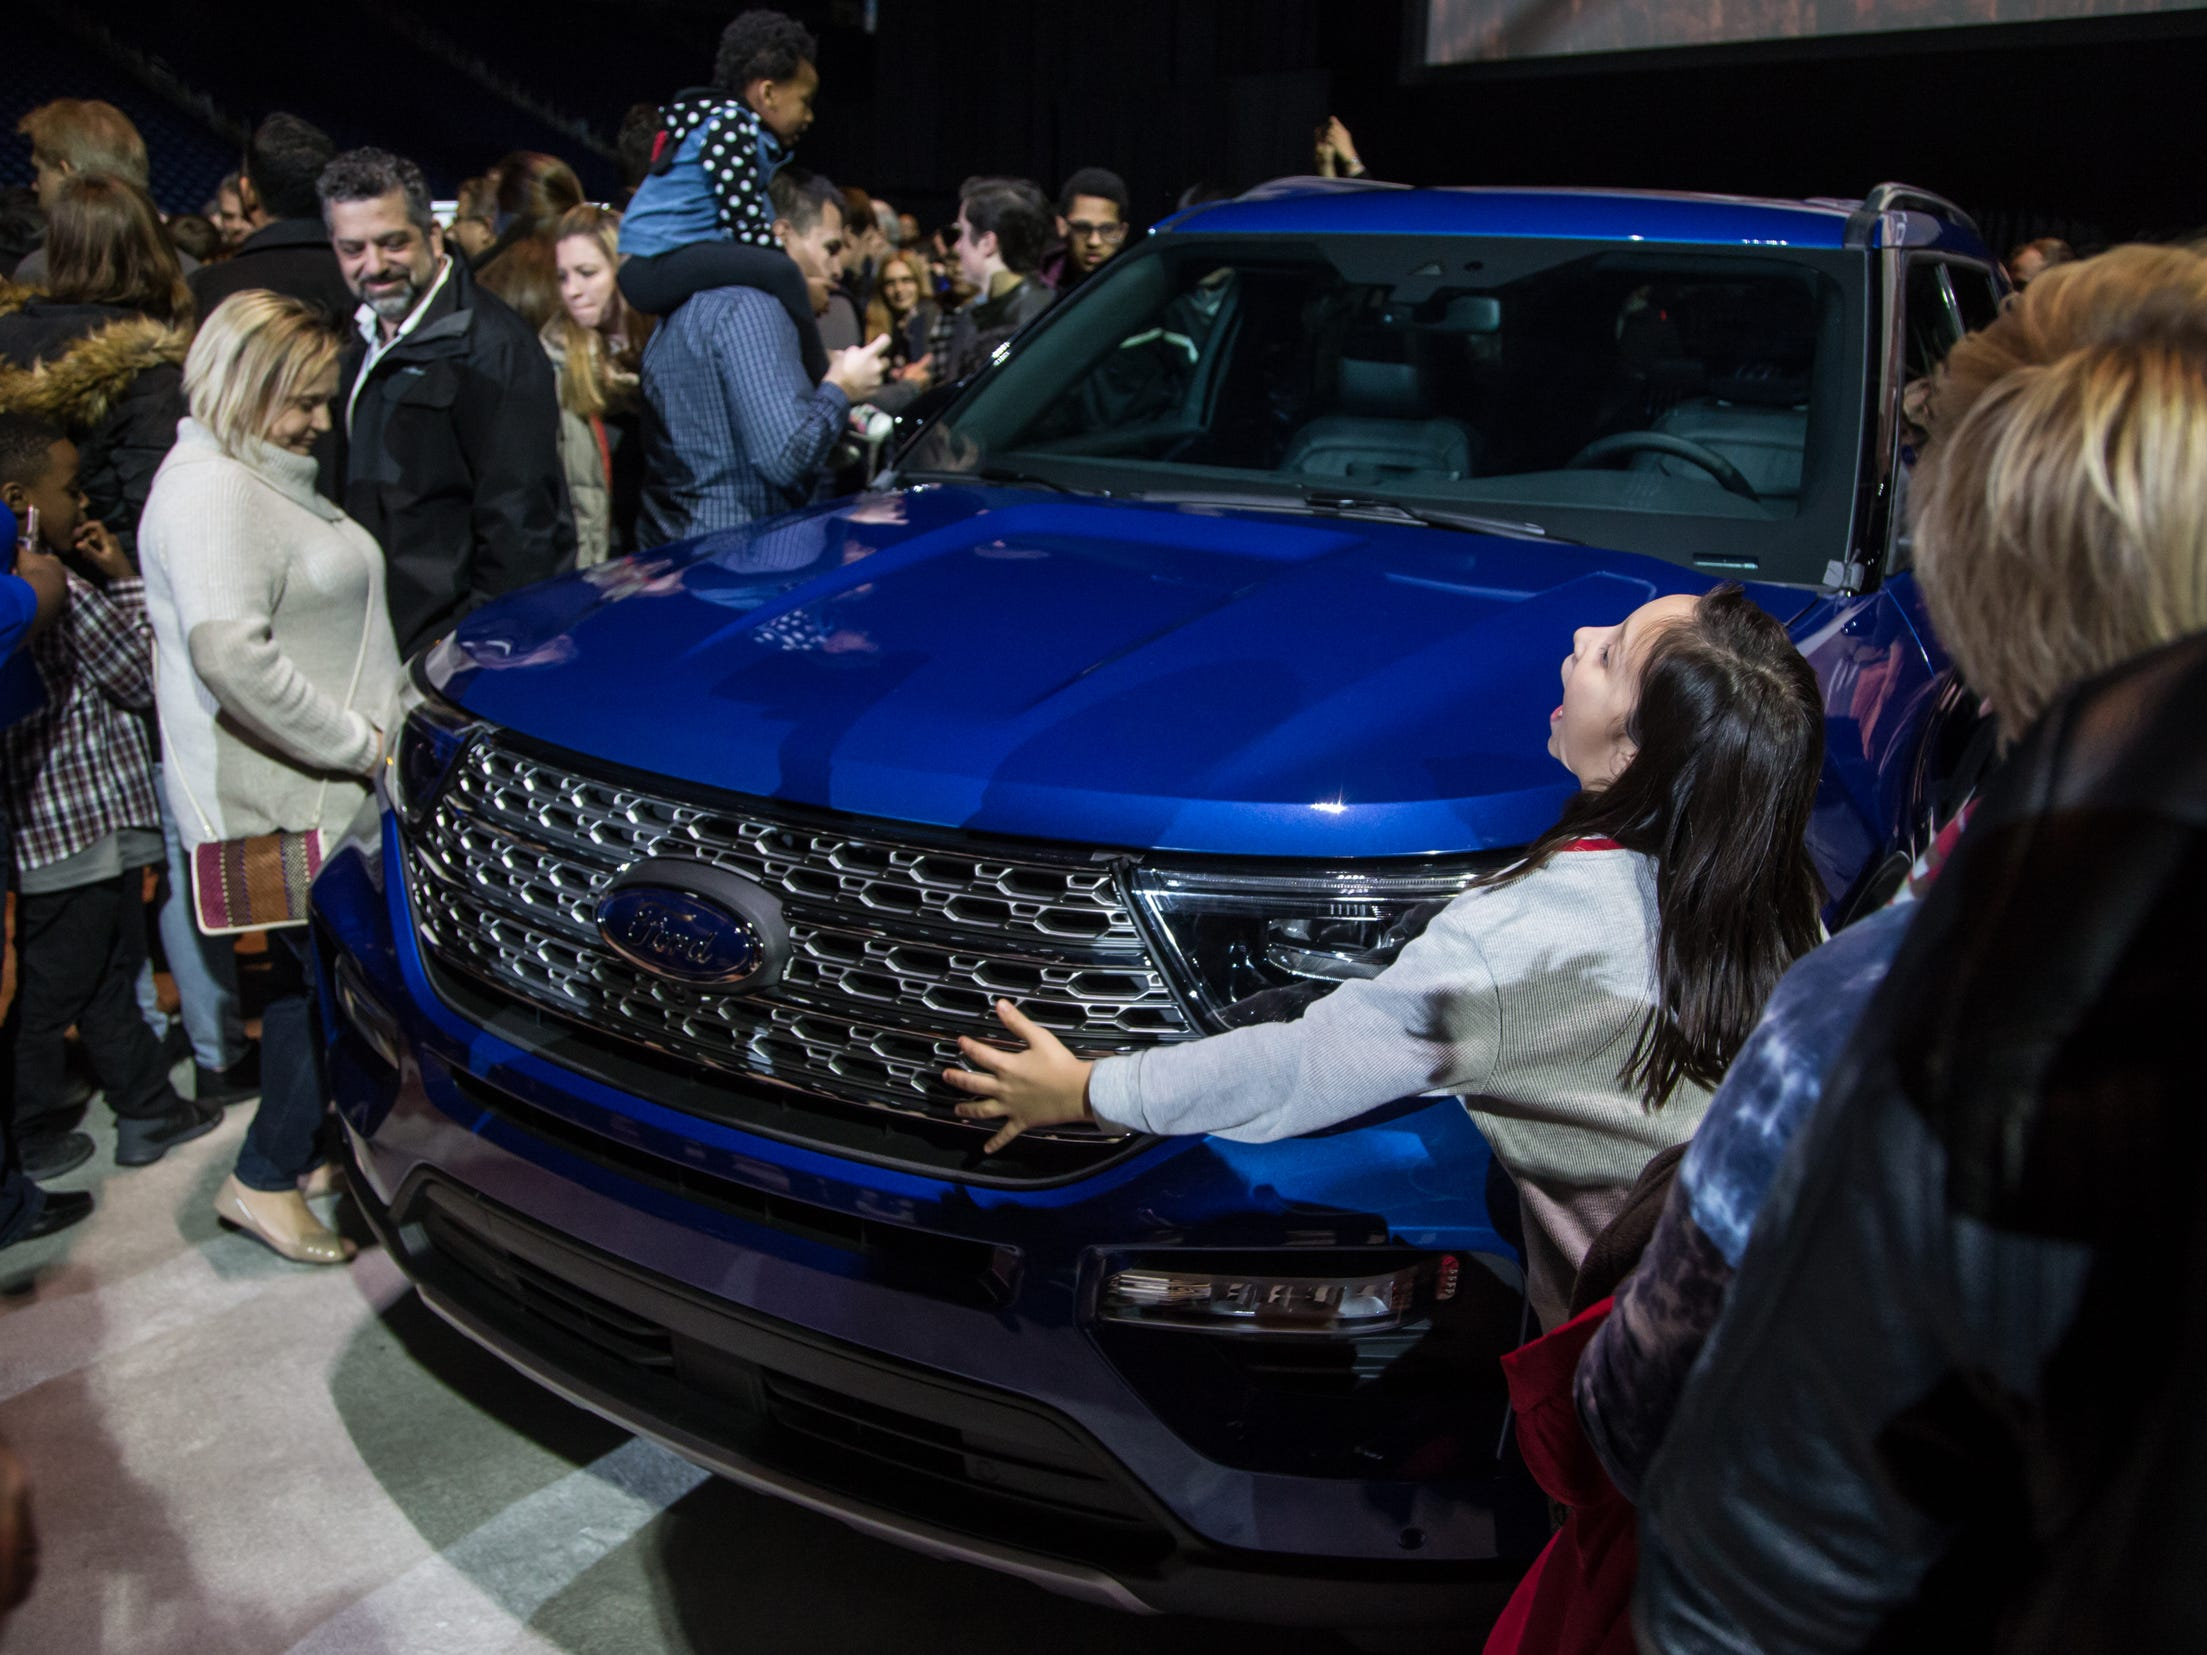 People look over the all new 2020 Ford Explorer during a Ford event at Ford Field in Detroit on Wednesday, January 9, 2019.